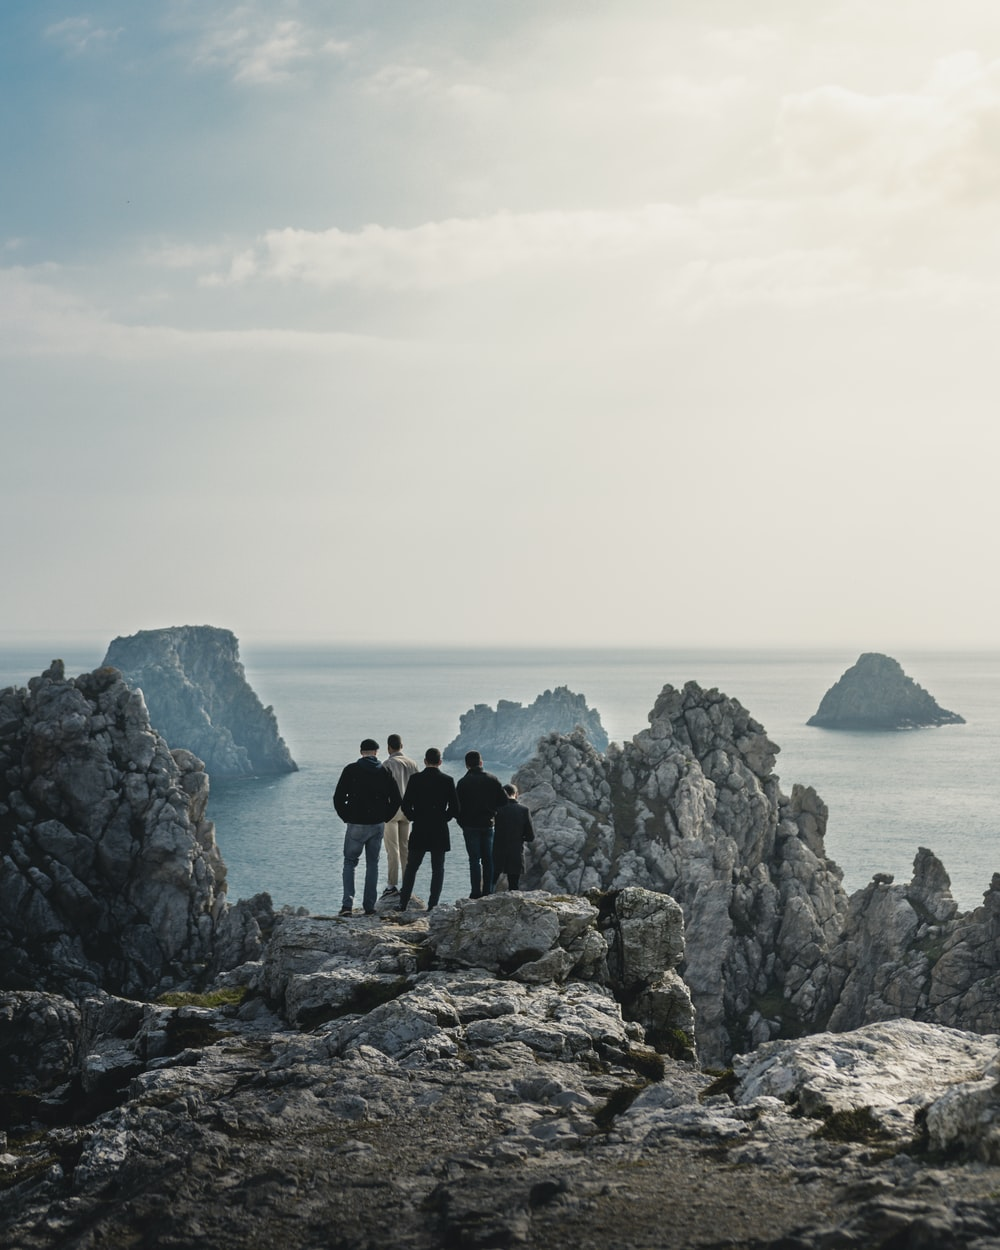 five person standing on rocky hill viewing calm sea